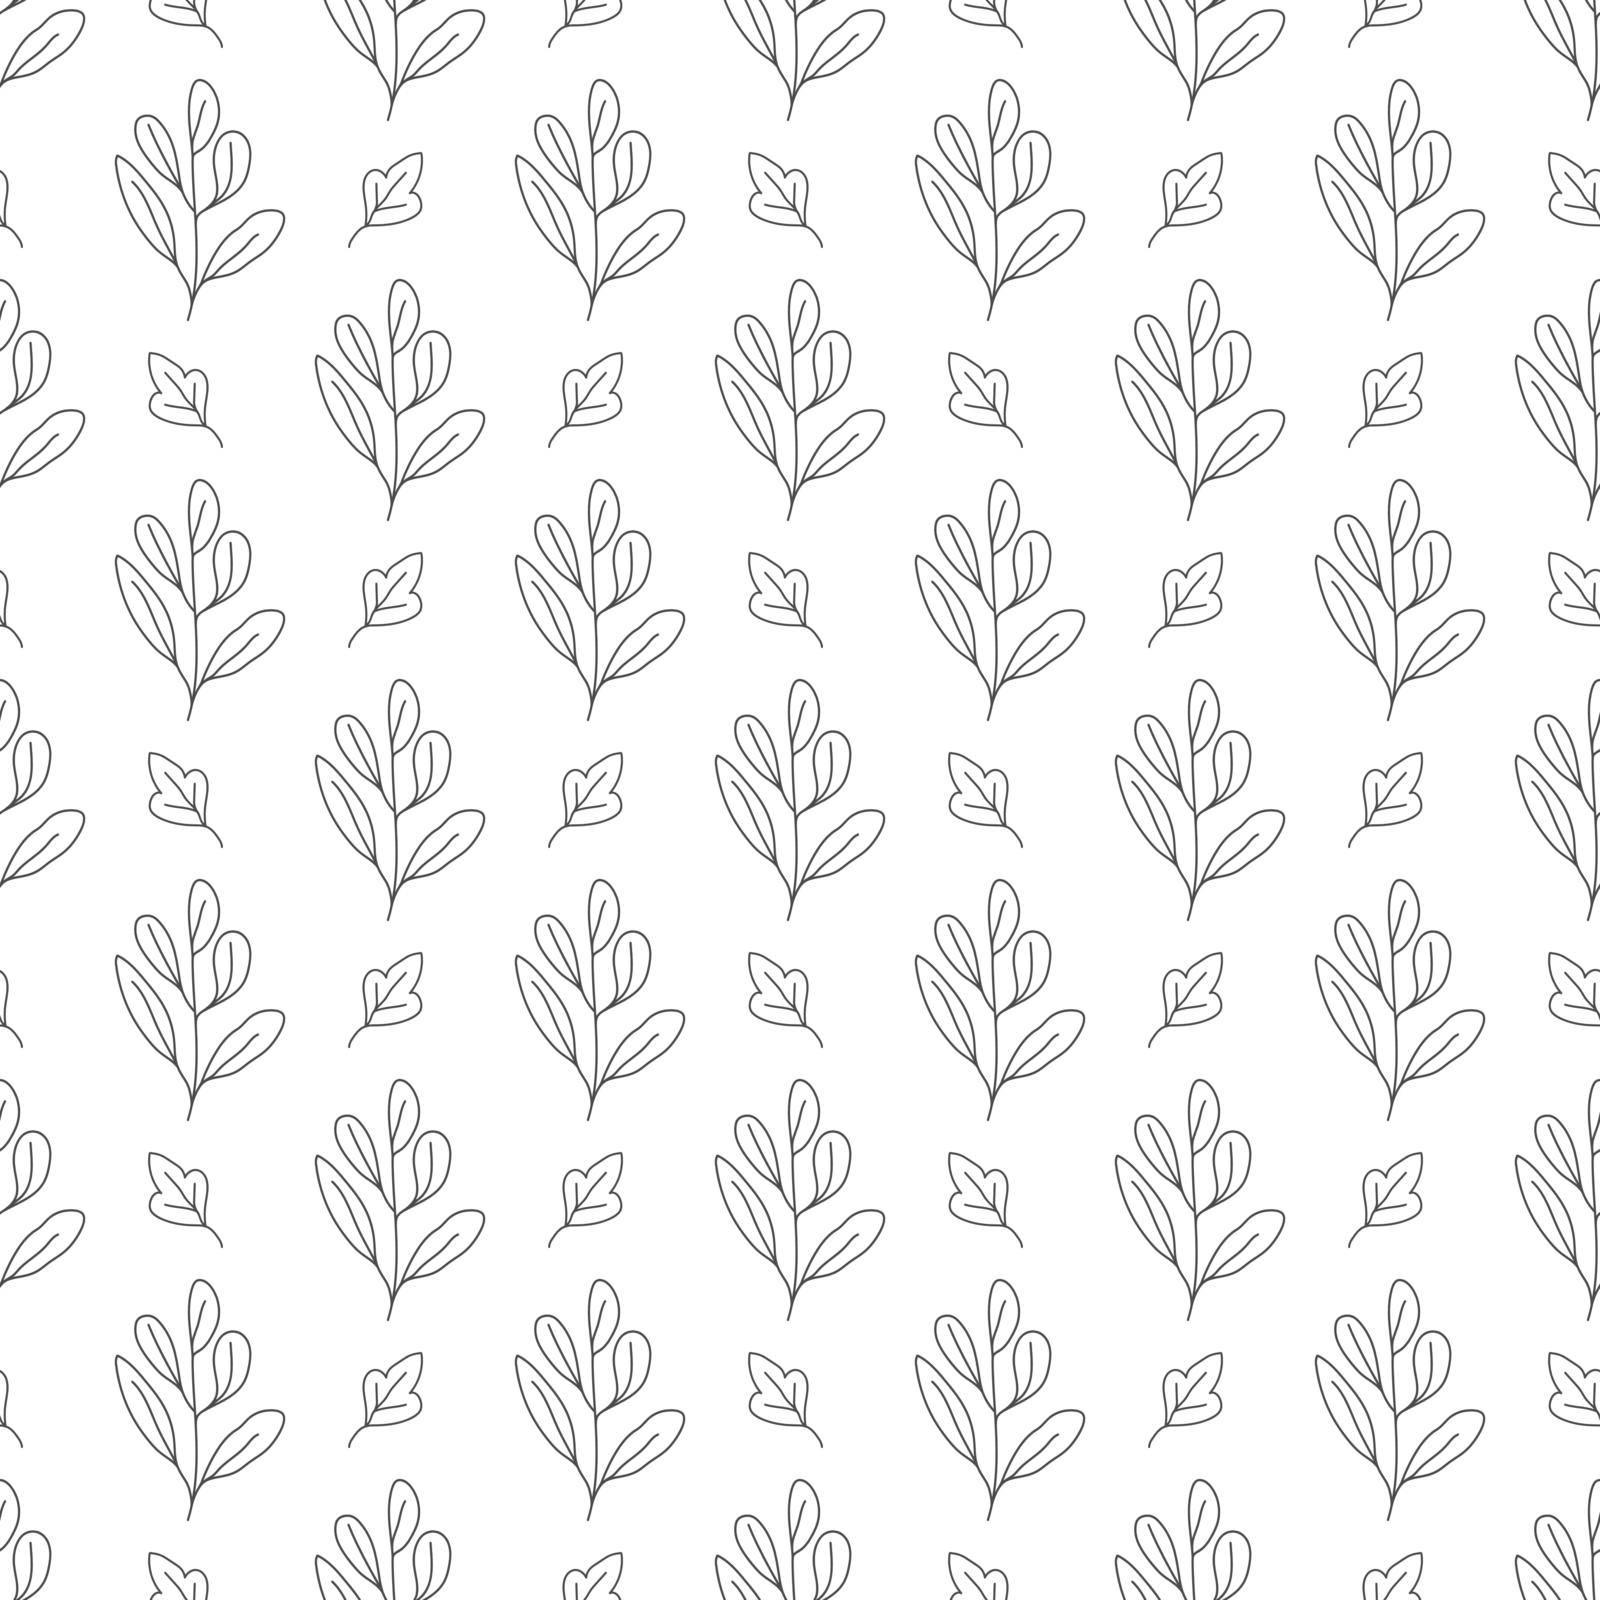 Seamless floral pattern for texture, textiles and simple backgrounds. Vector illustration by Grommik